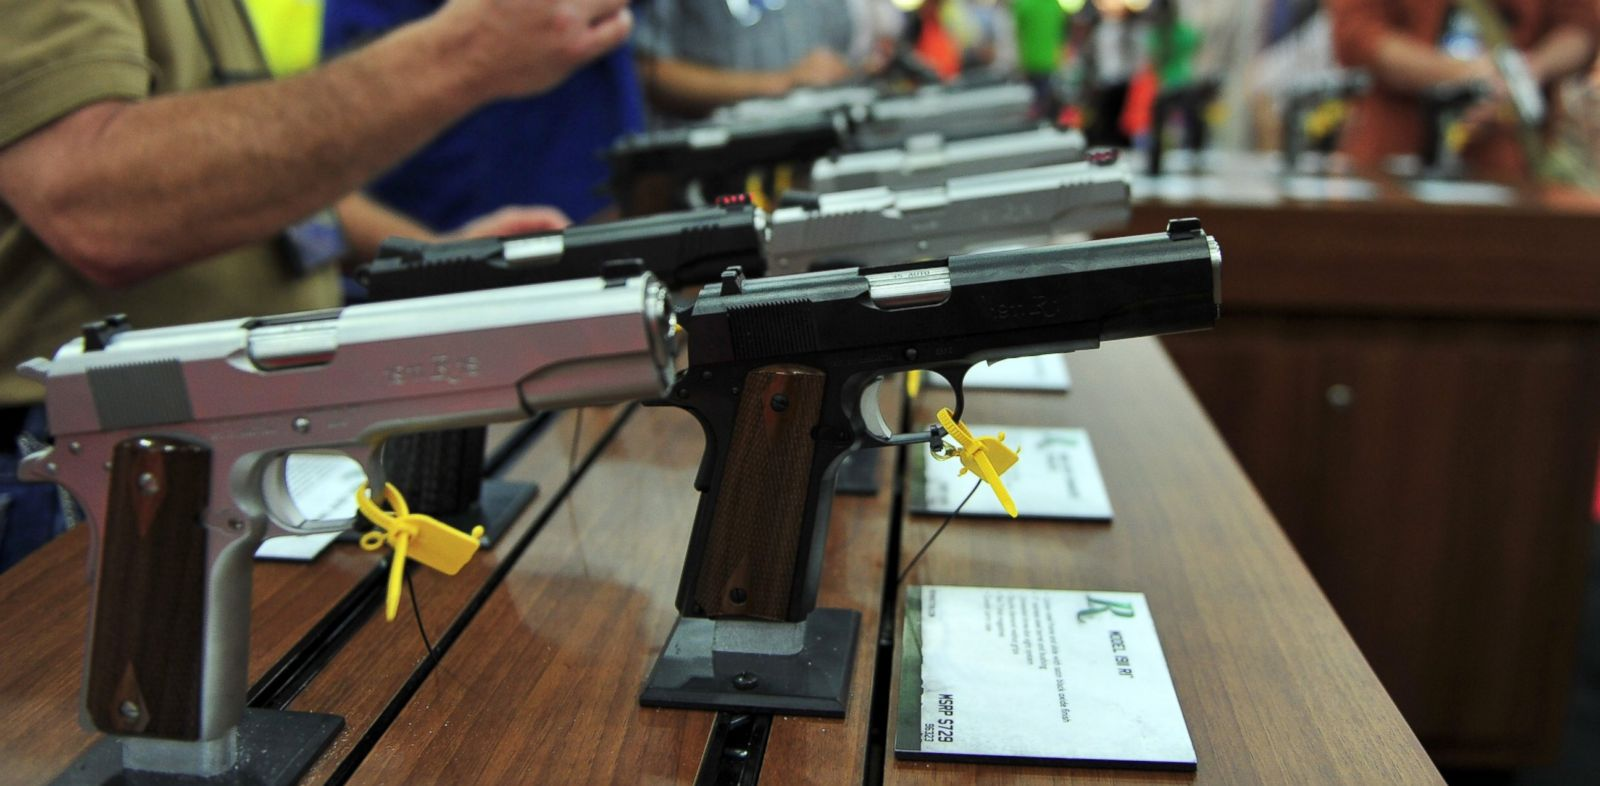 PHOTO: Convention goers look at various models of Ruger 1911 model semi-automatic pistols during the National Rifle Association convention at the George R. Brown Convention Center May 4, 2013 in Houston, Texas.